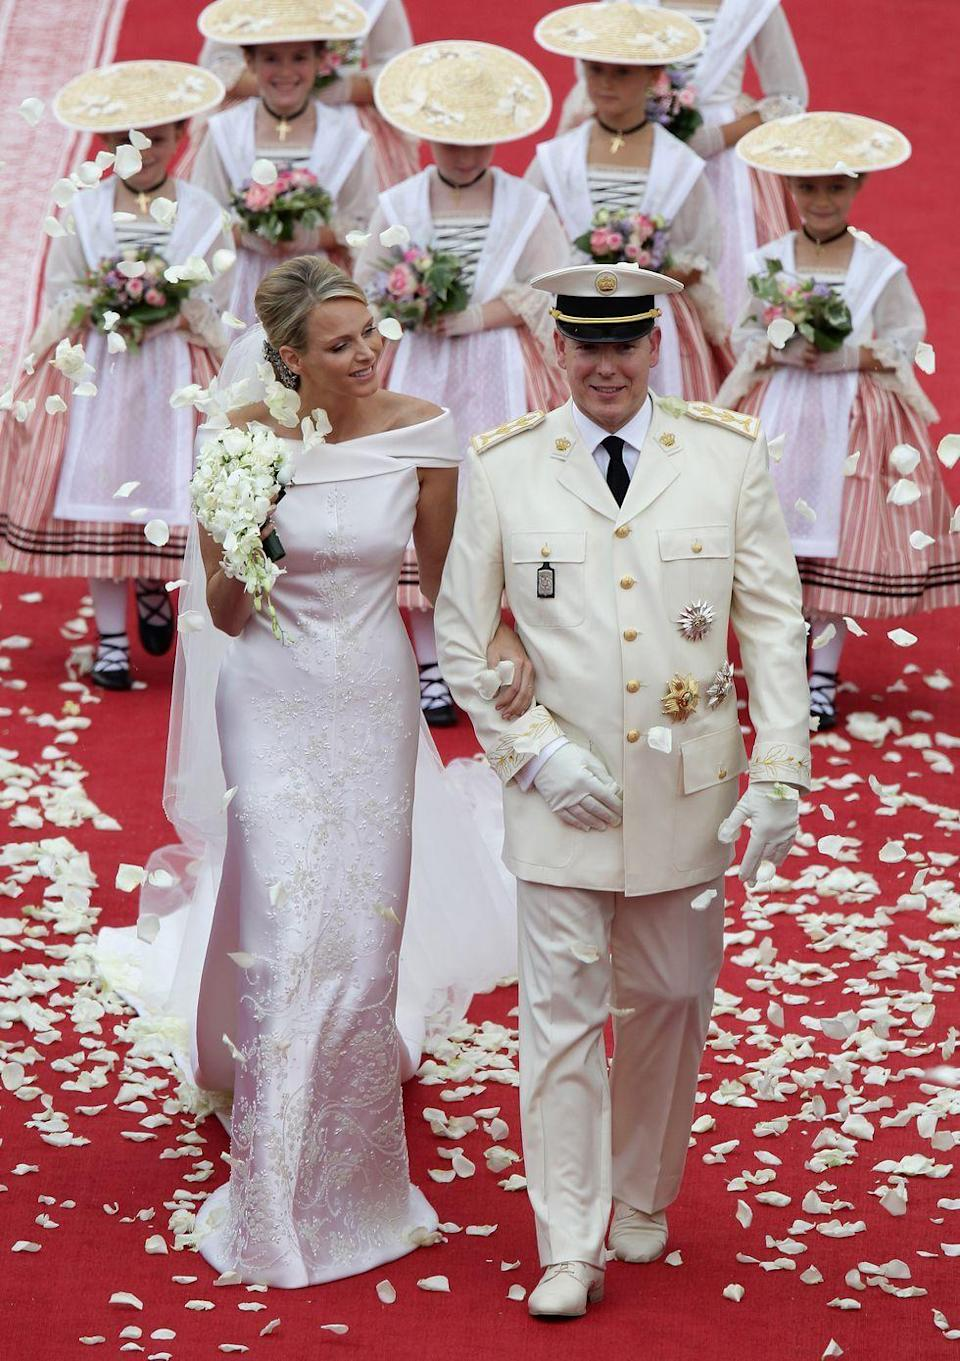 <p>The South African Olympic swimmer met Prince Albert II of Monaco (the son of Grace Kelly) in 2000, when she was in Monaco for a competition. The couple dated for years and made their first public appearance in 2006, at the Olympic Games in Torino. The two wed on July 2, 2011.</p>